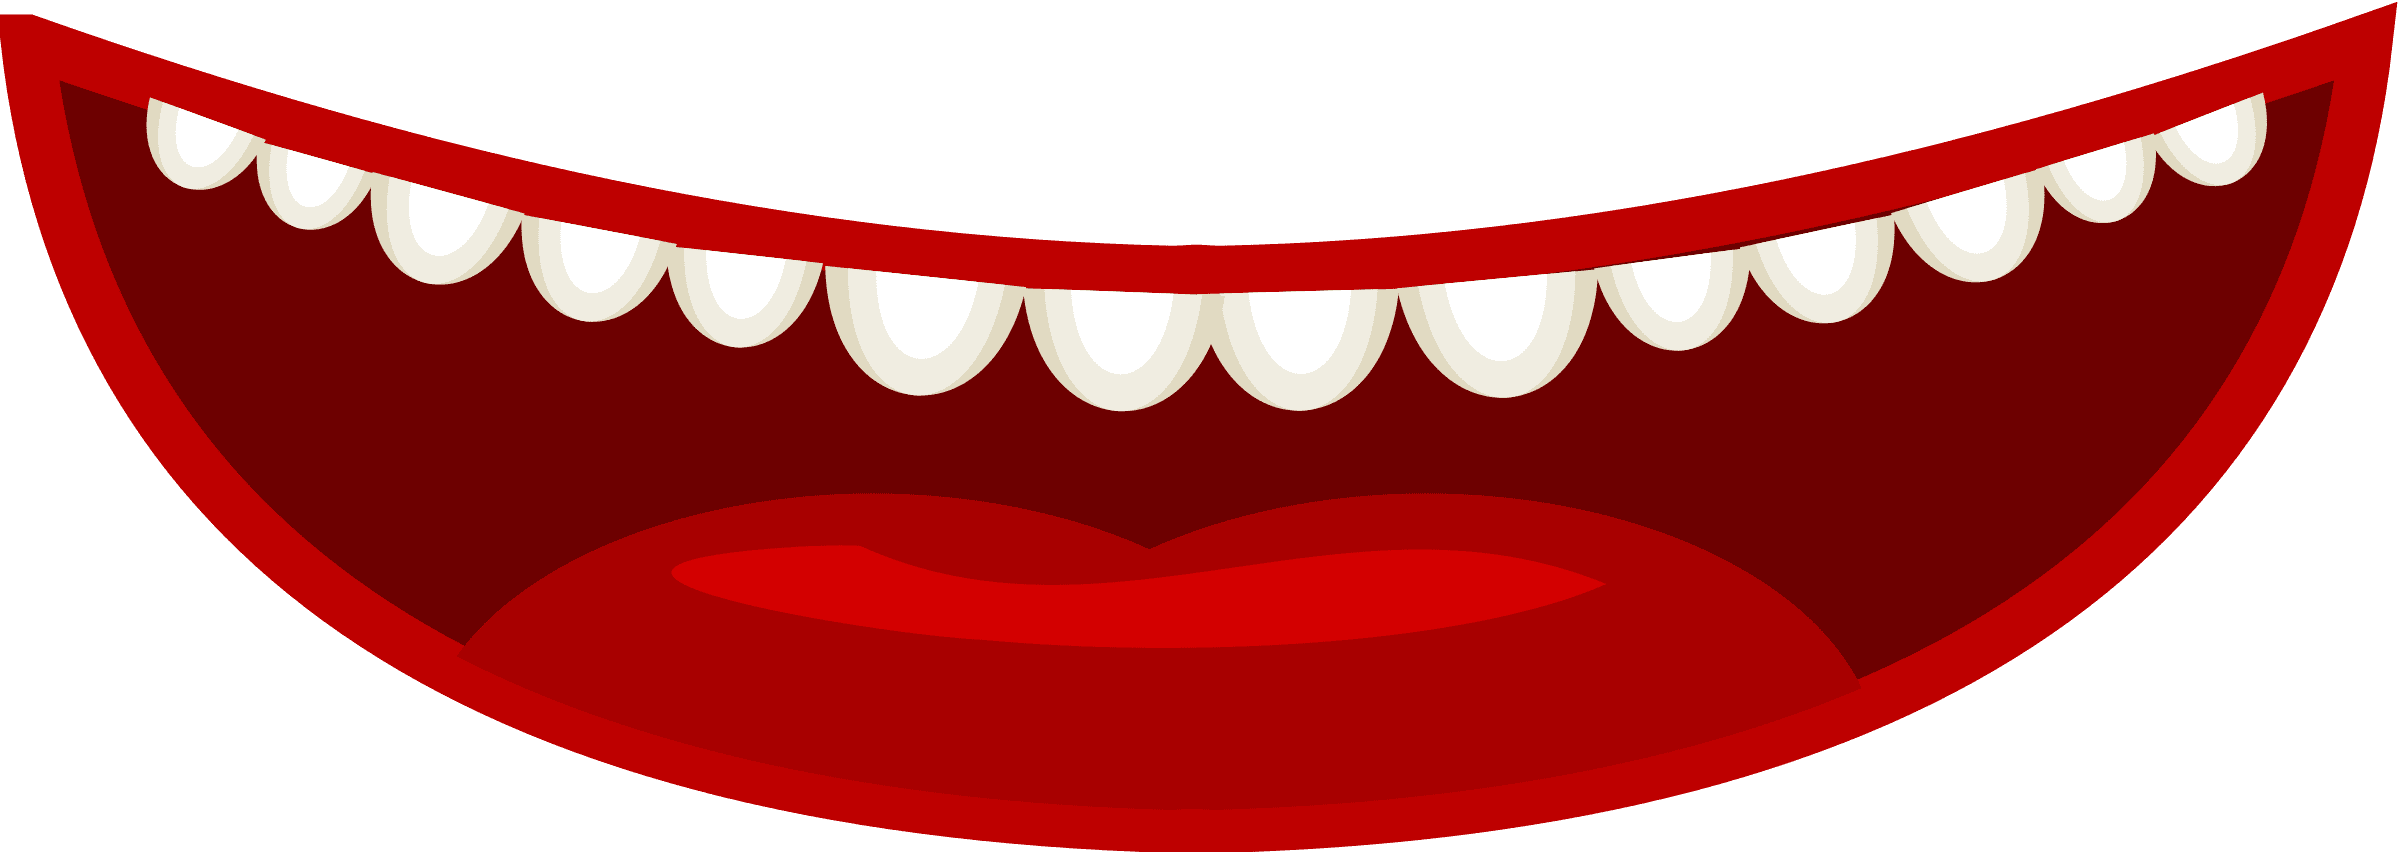 Smile png free images. Snake clipart open mouth